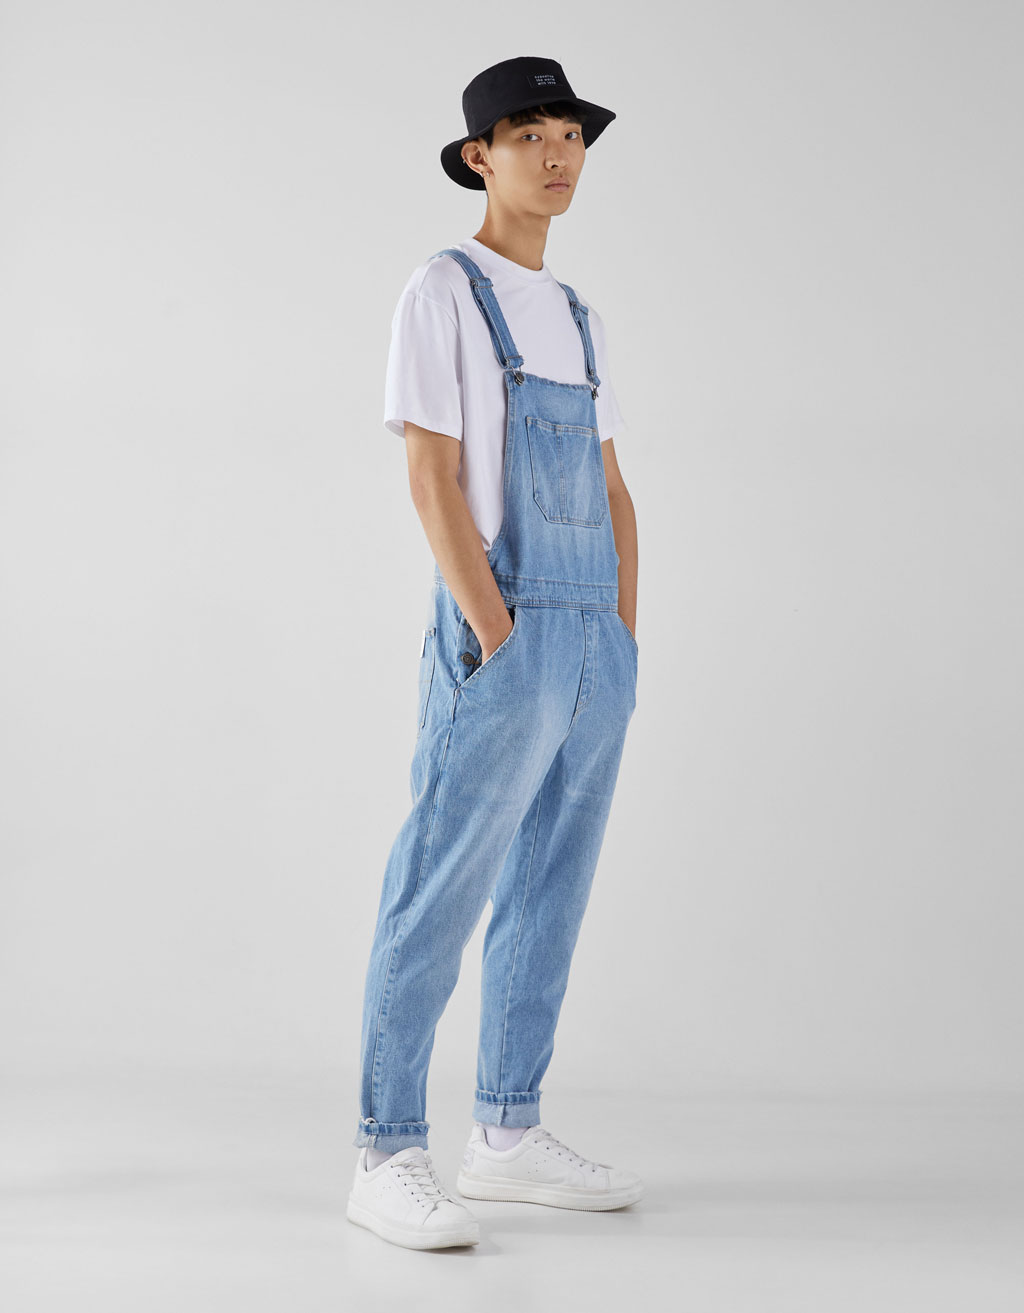 Salopette denim lunga